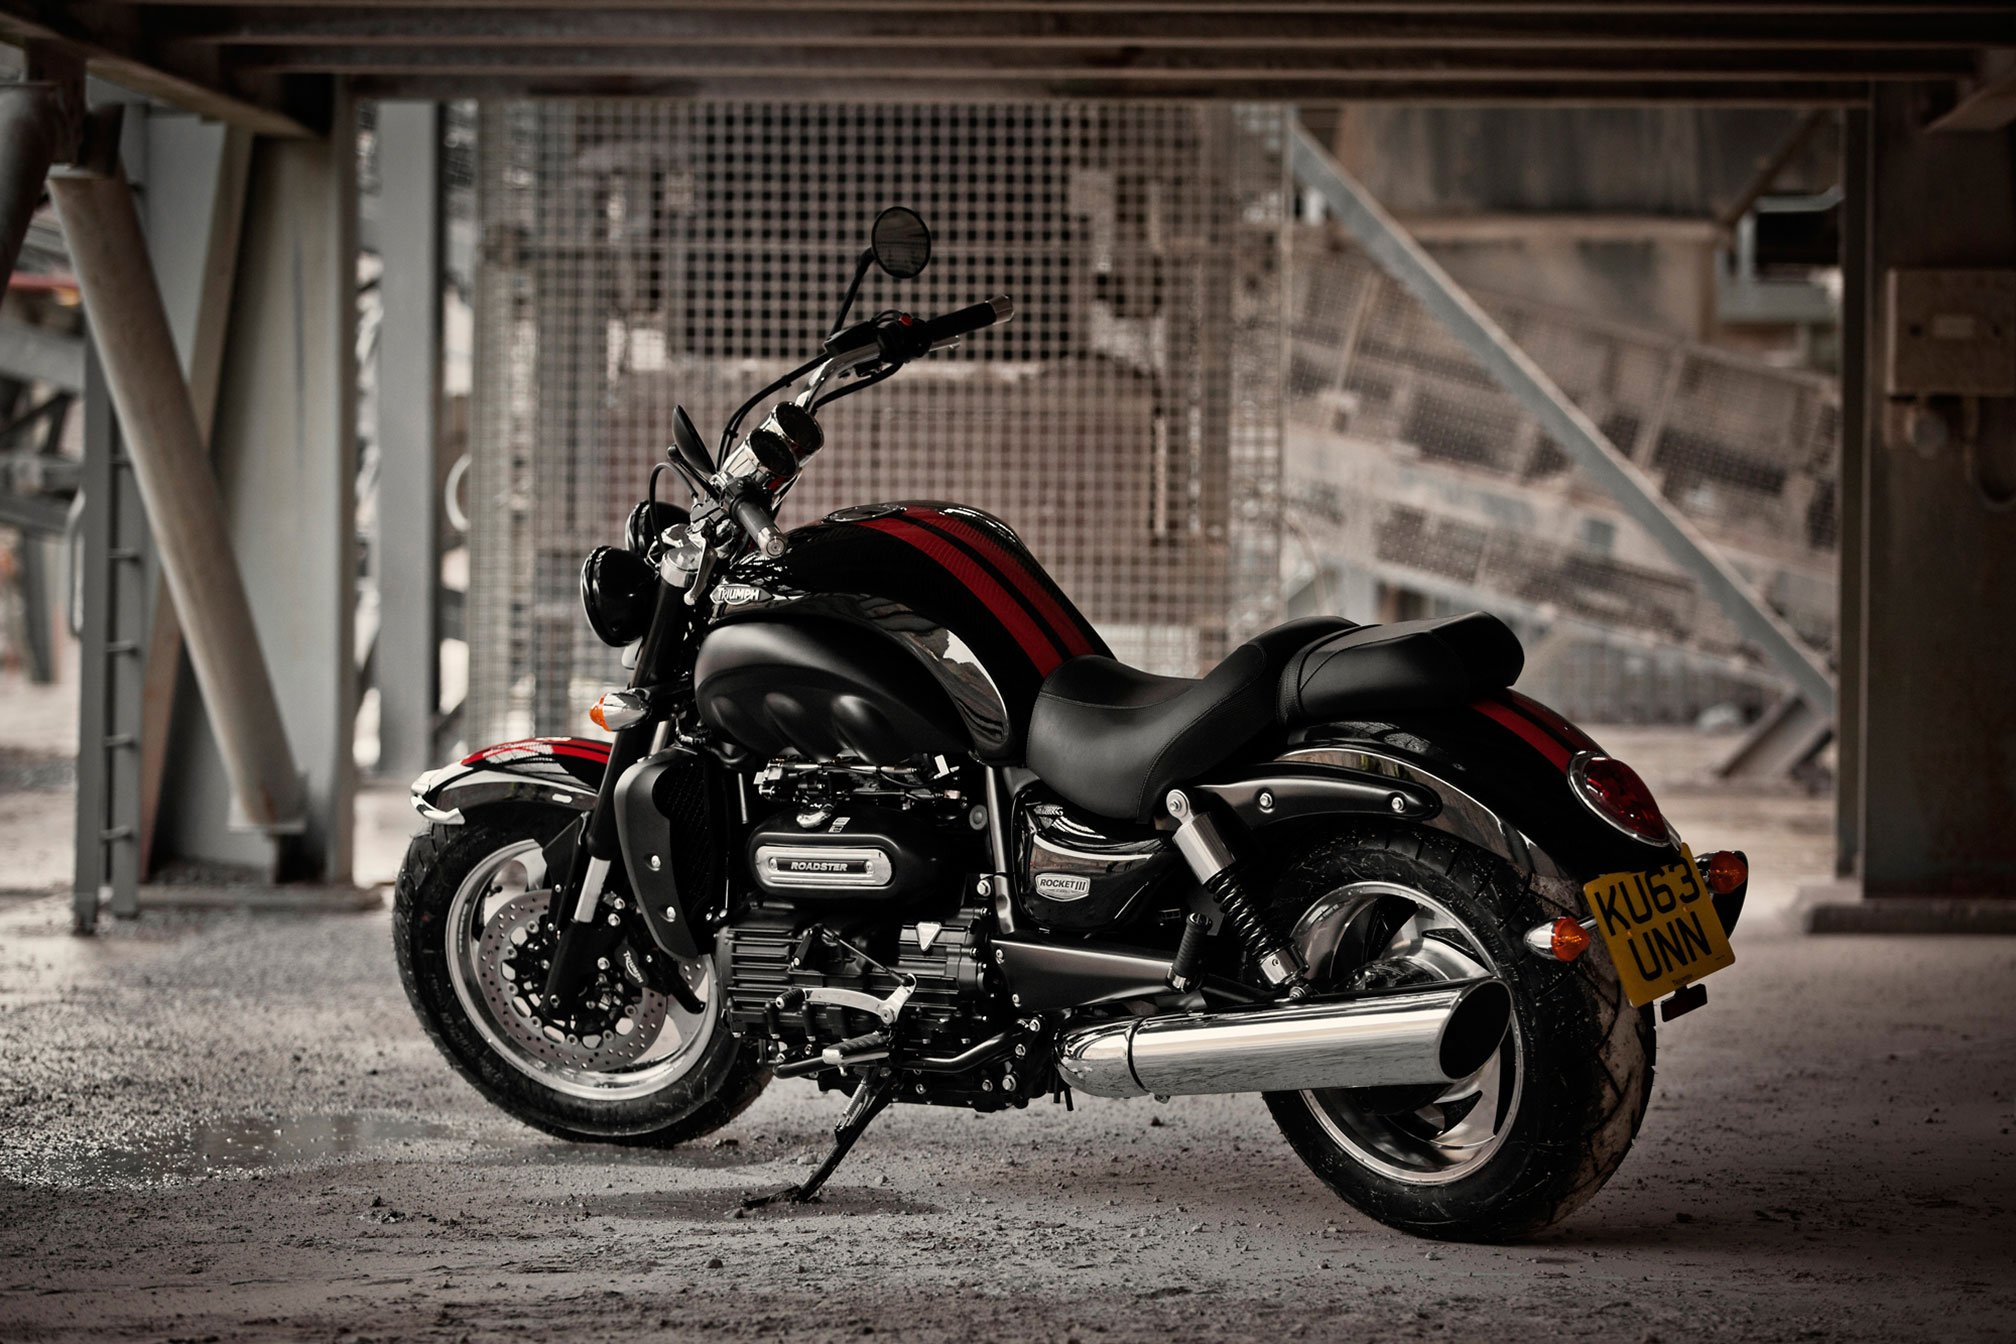 triumph rocket iii motorcycle - photo #22